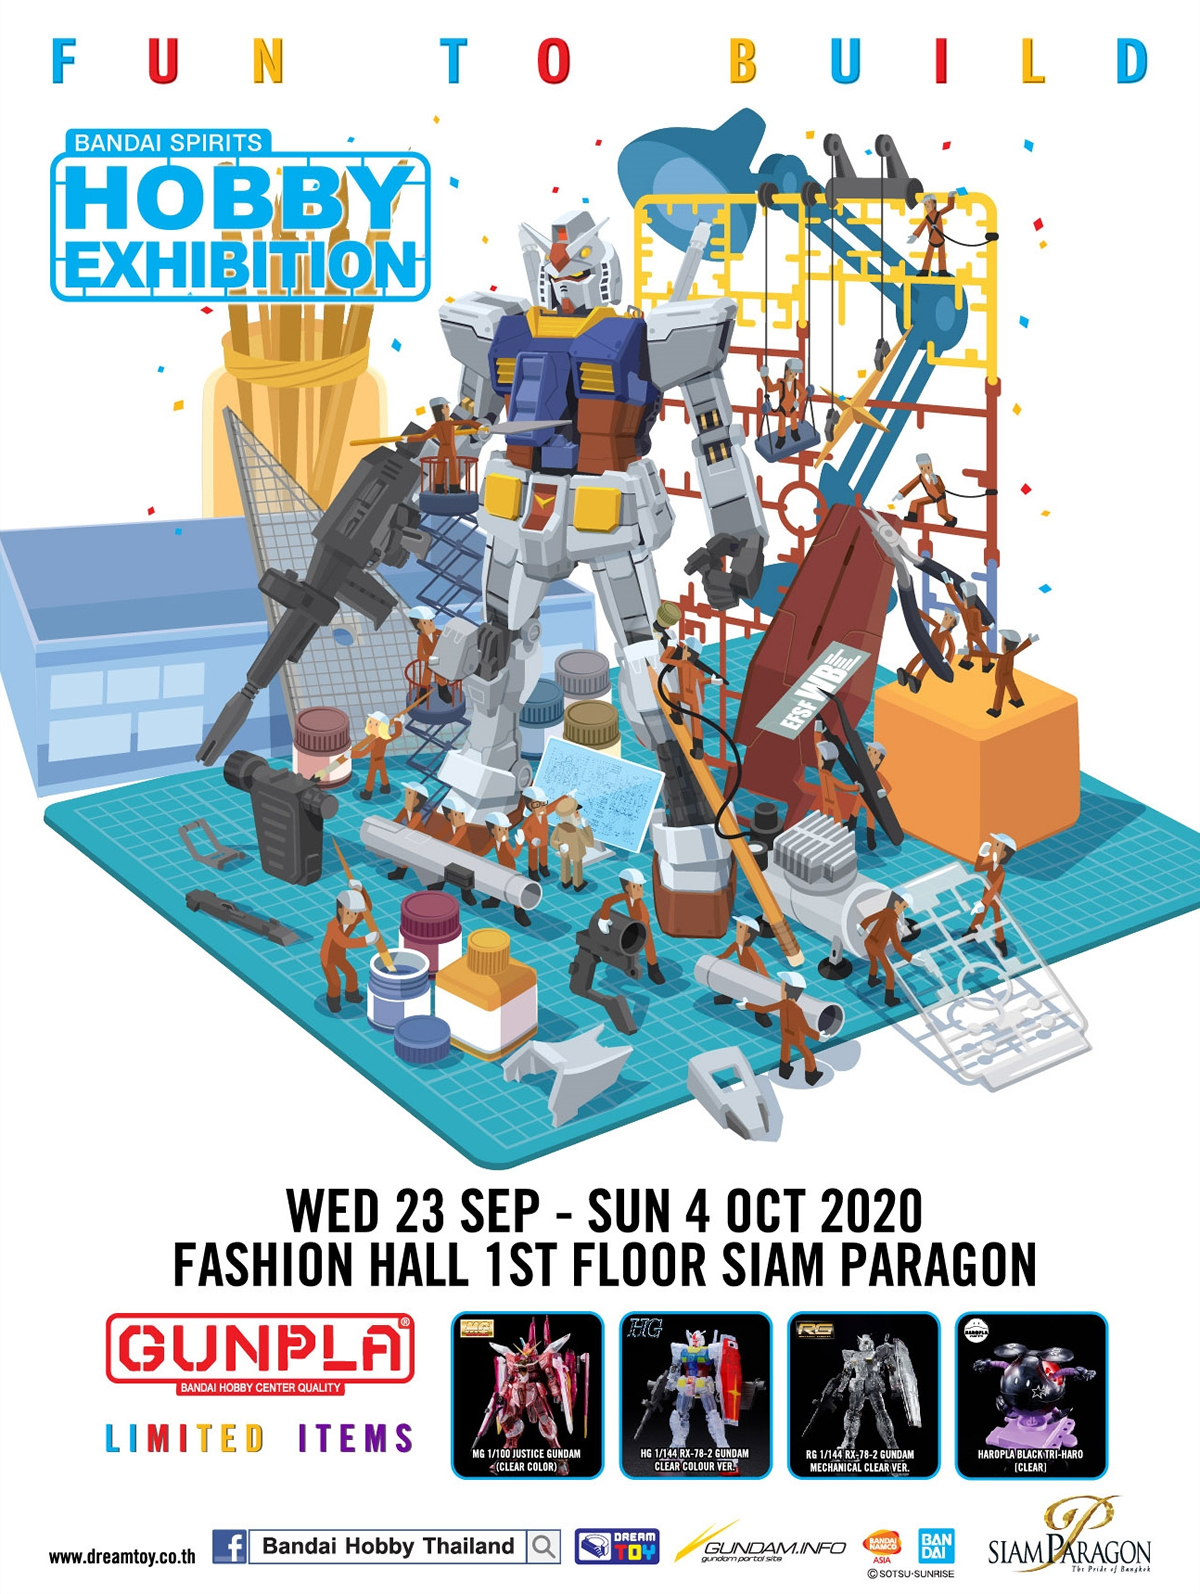 Siam Paragon Presents Bandai Spirits Hobby Exhibition 2020